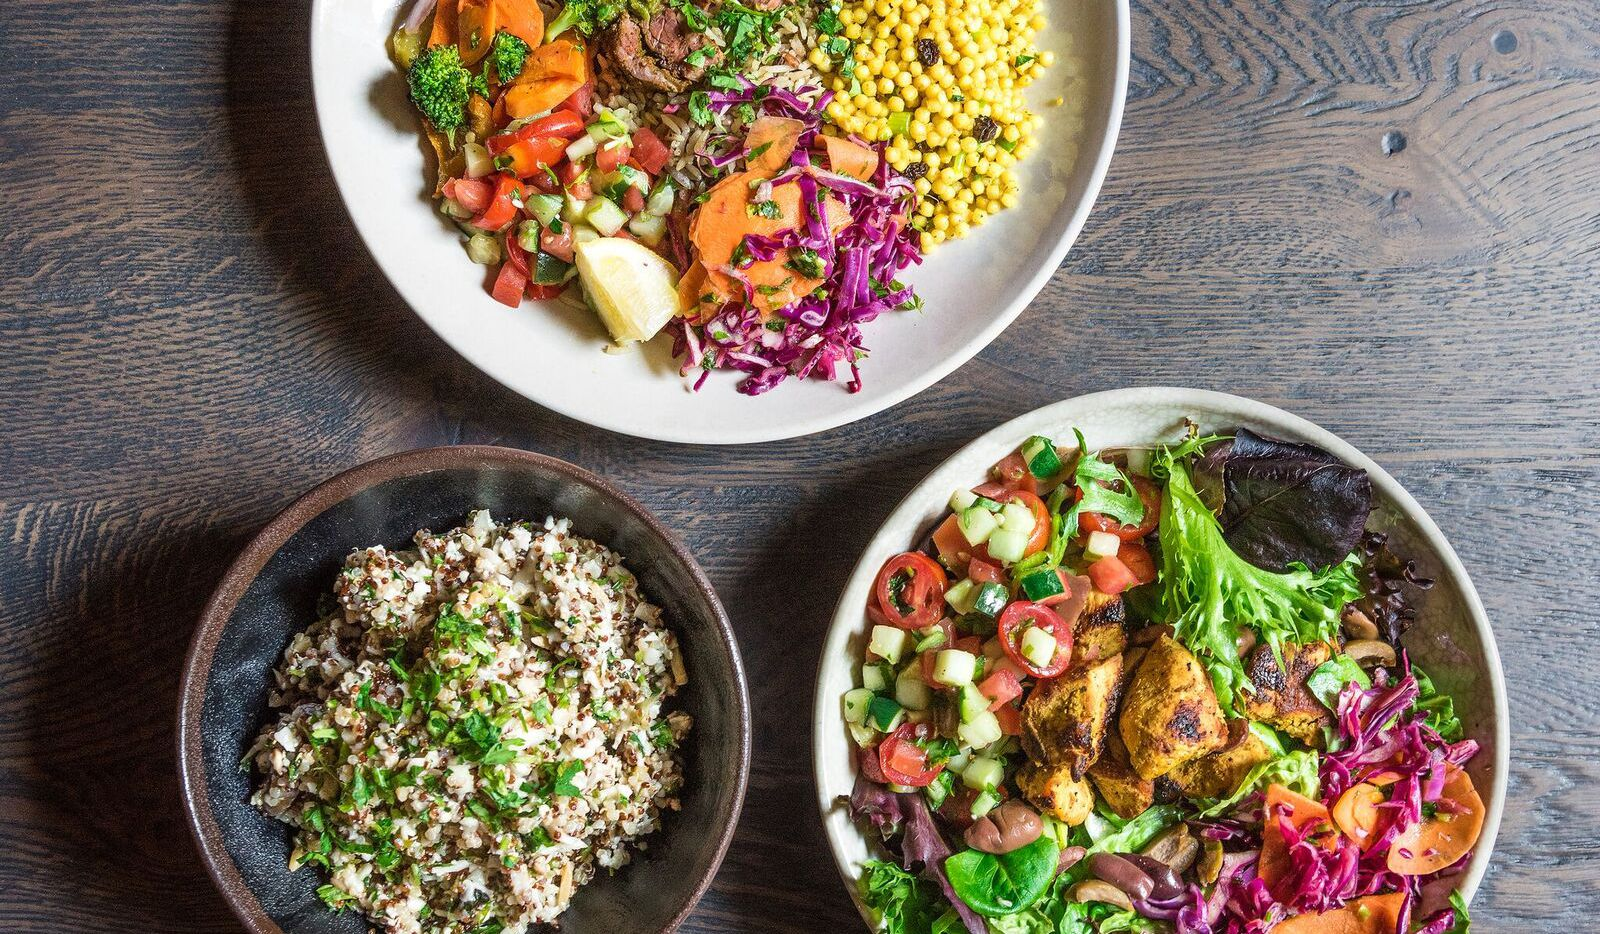 Roti Modern Mediterranean opens at McKinney & Olive in Uptown Dallas on June 15, 2017.